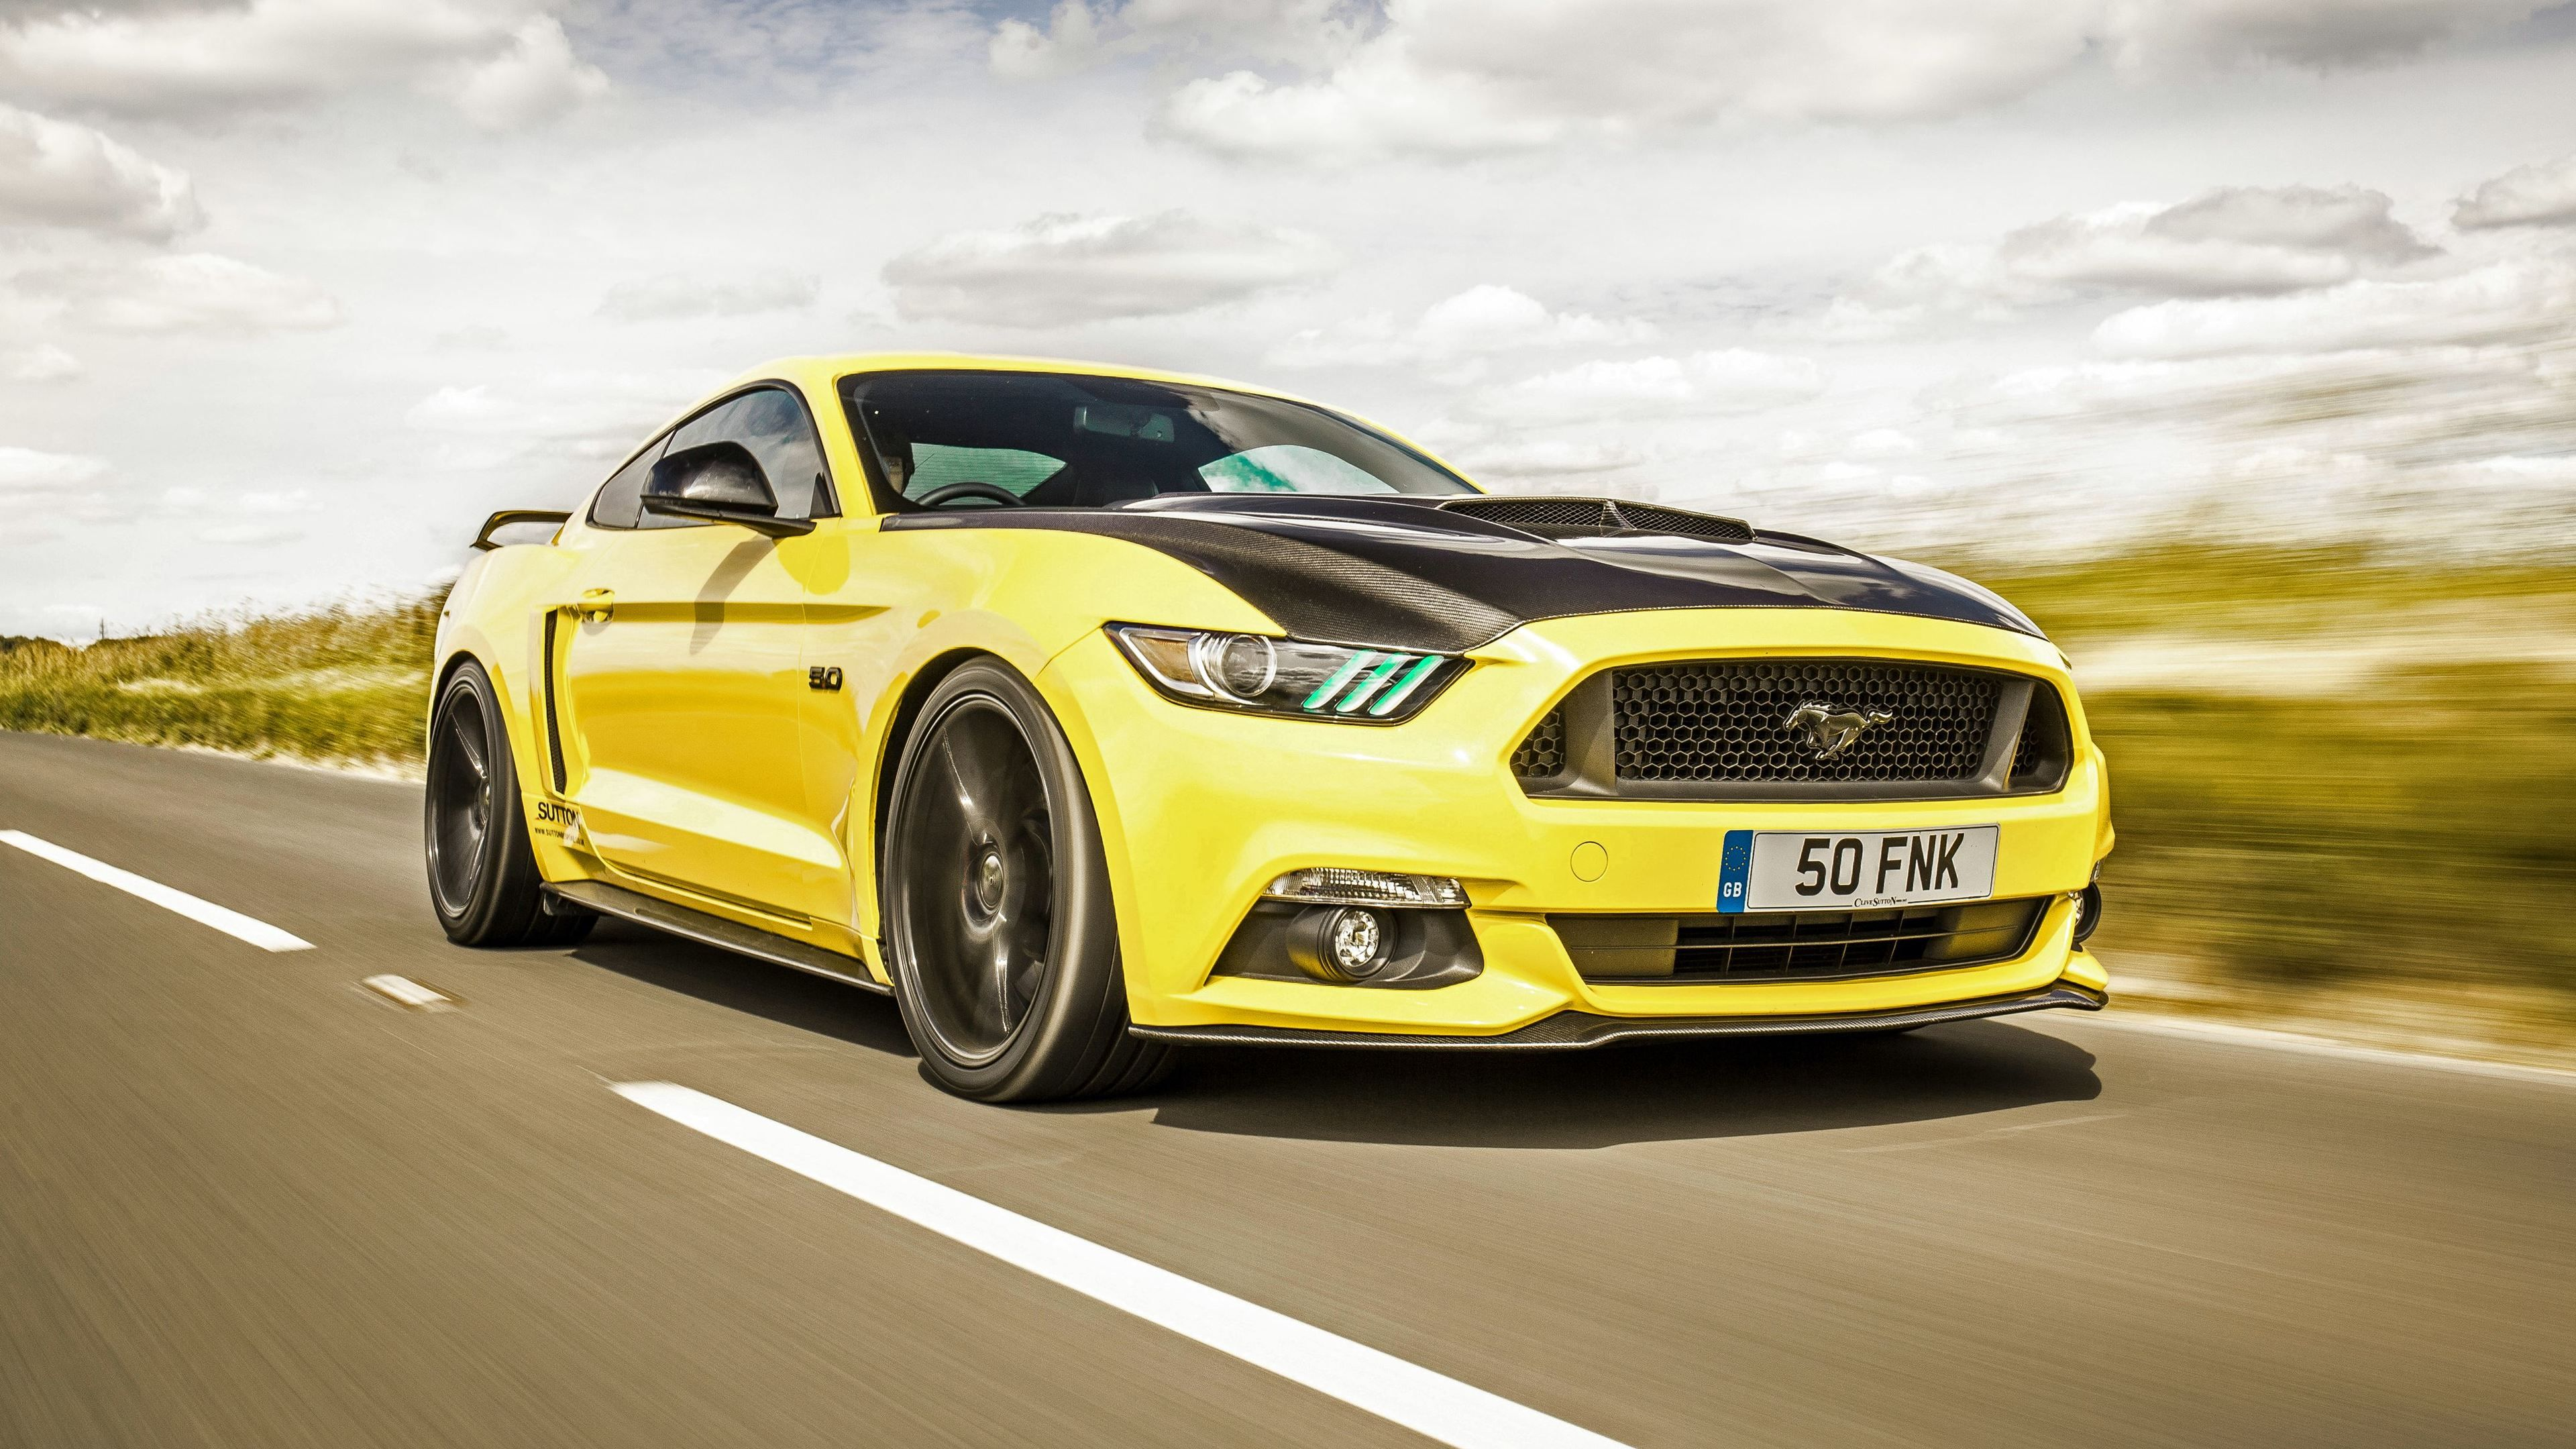 Ford Mustang Gt Ford Mustang Wallpapers Cars Wallpapers Ford Mustang Gt Ford Mustang Mustang Gt